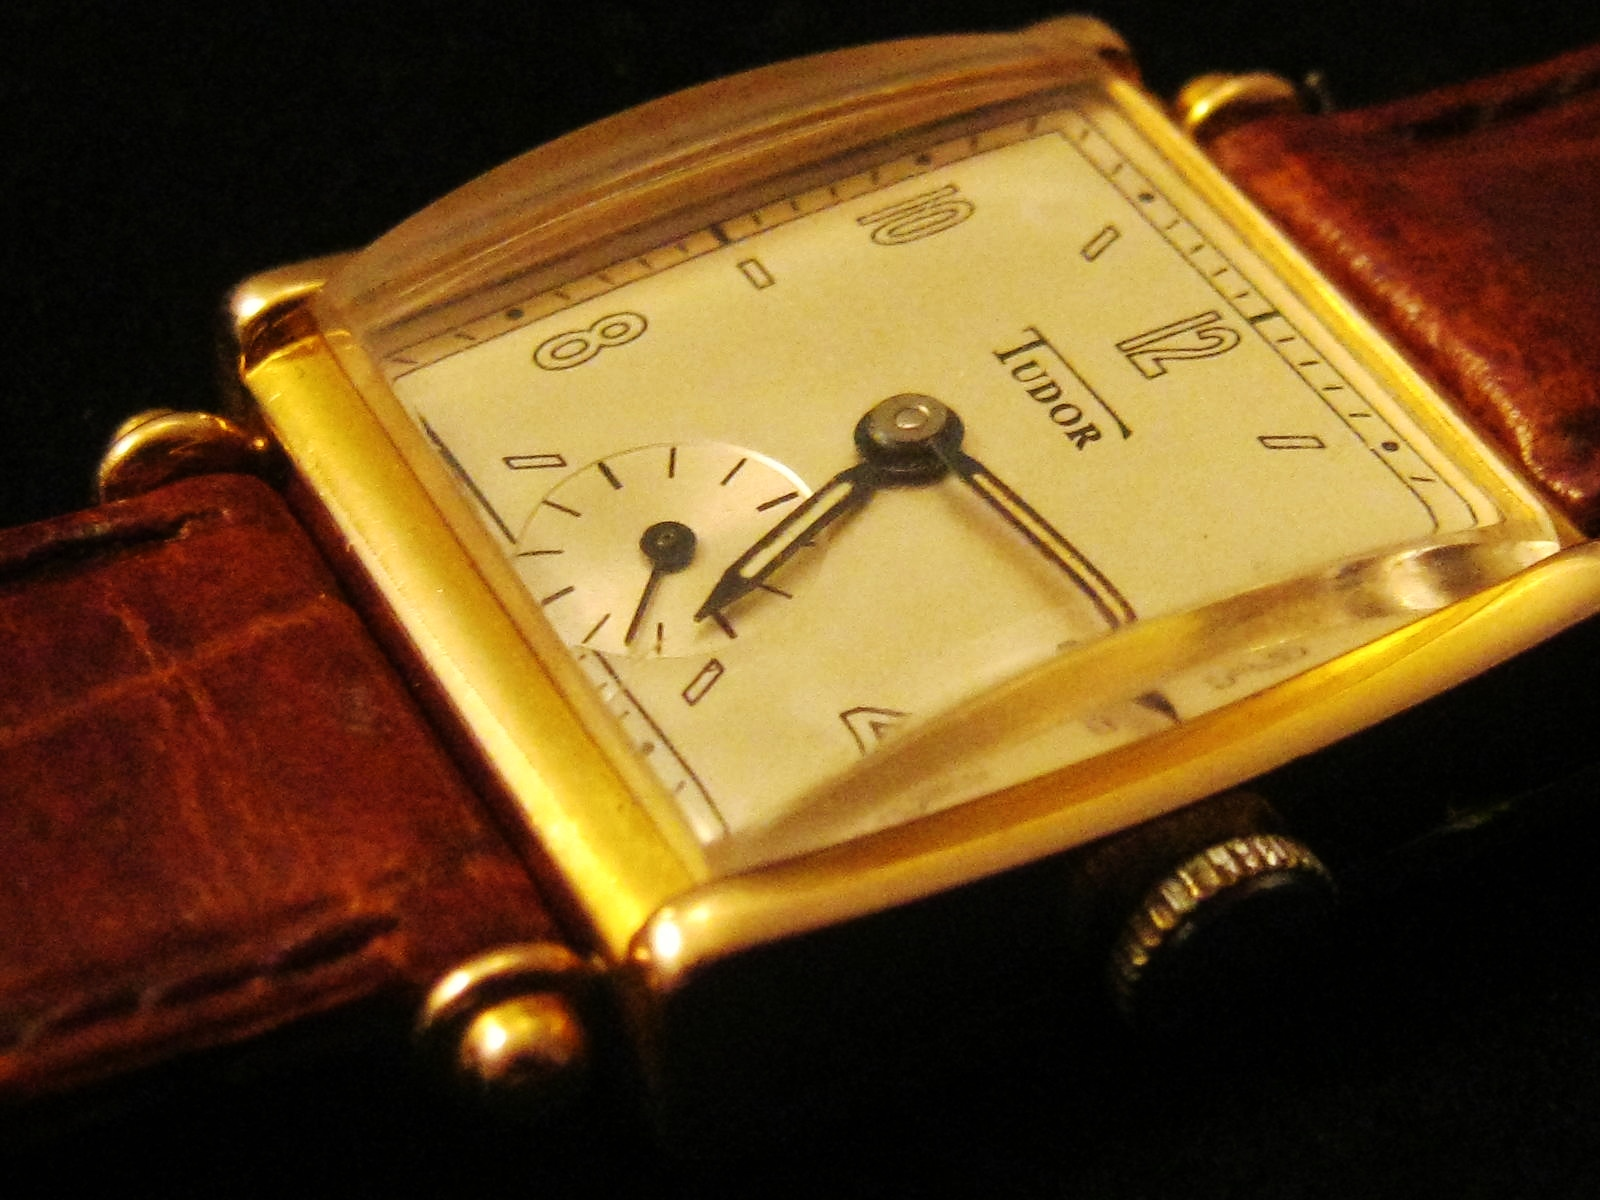 Rolex Watches And Prices